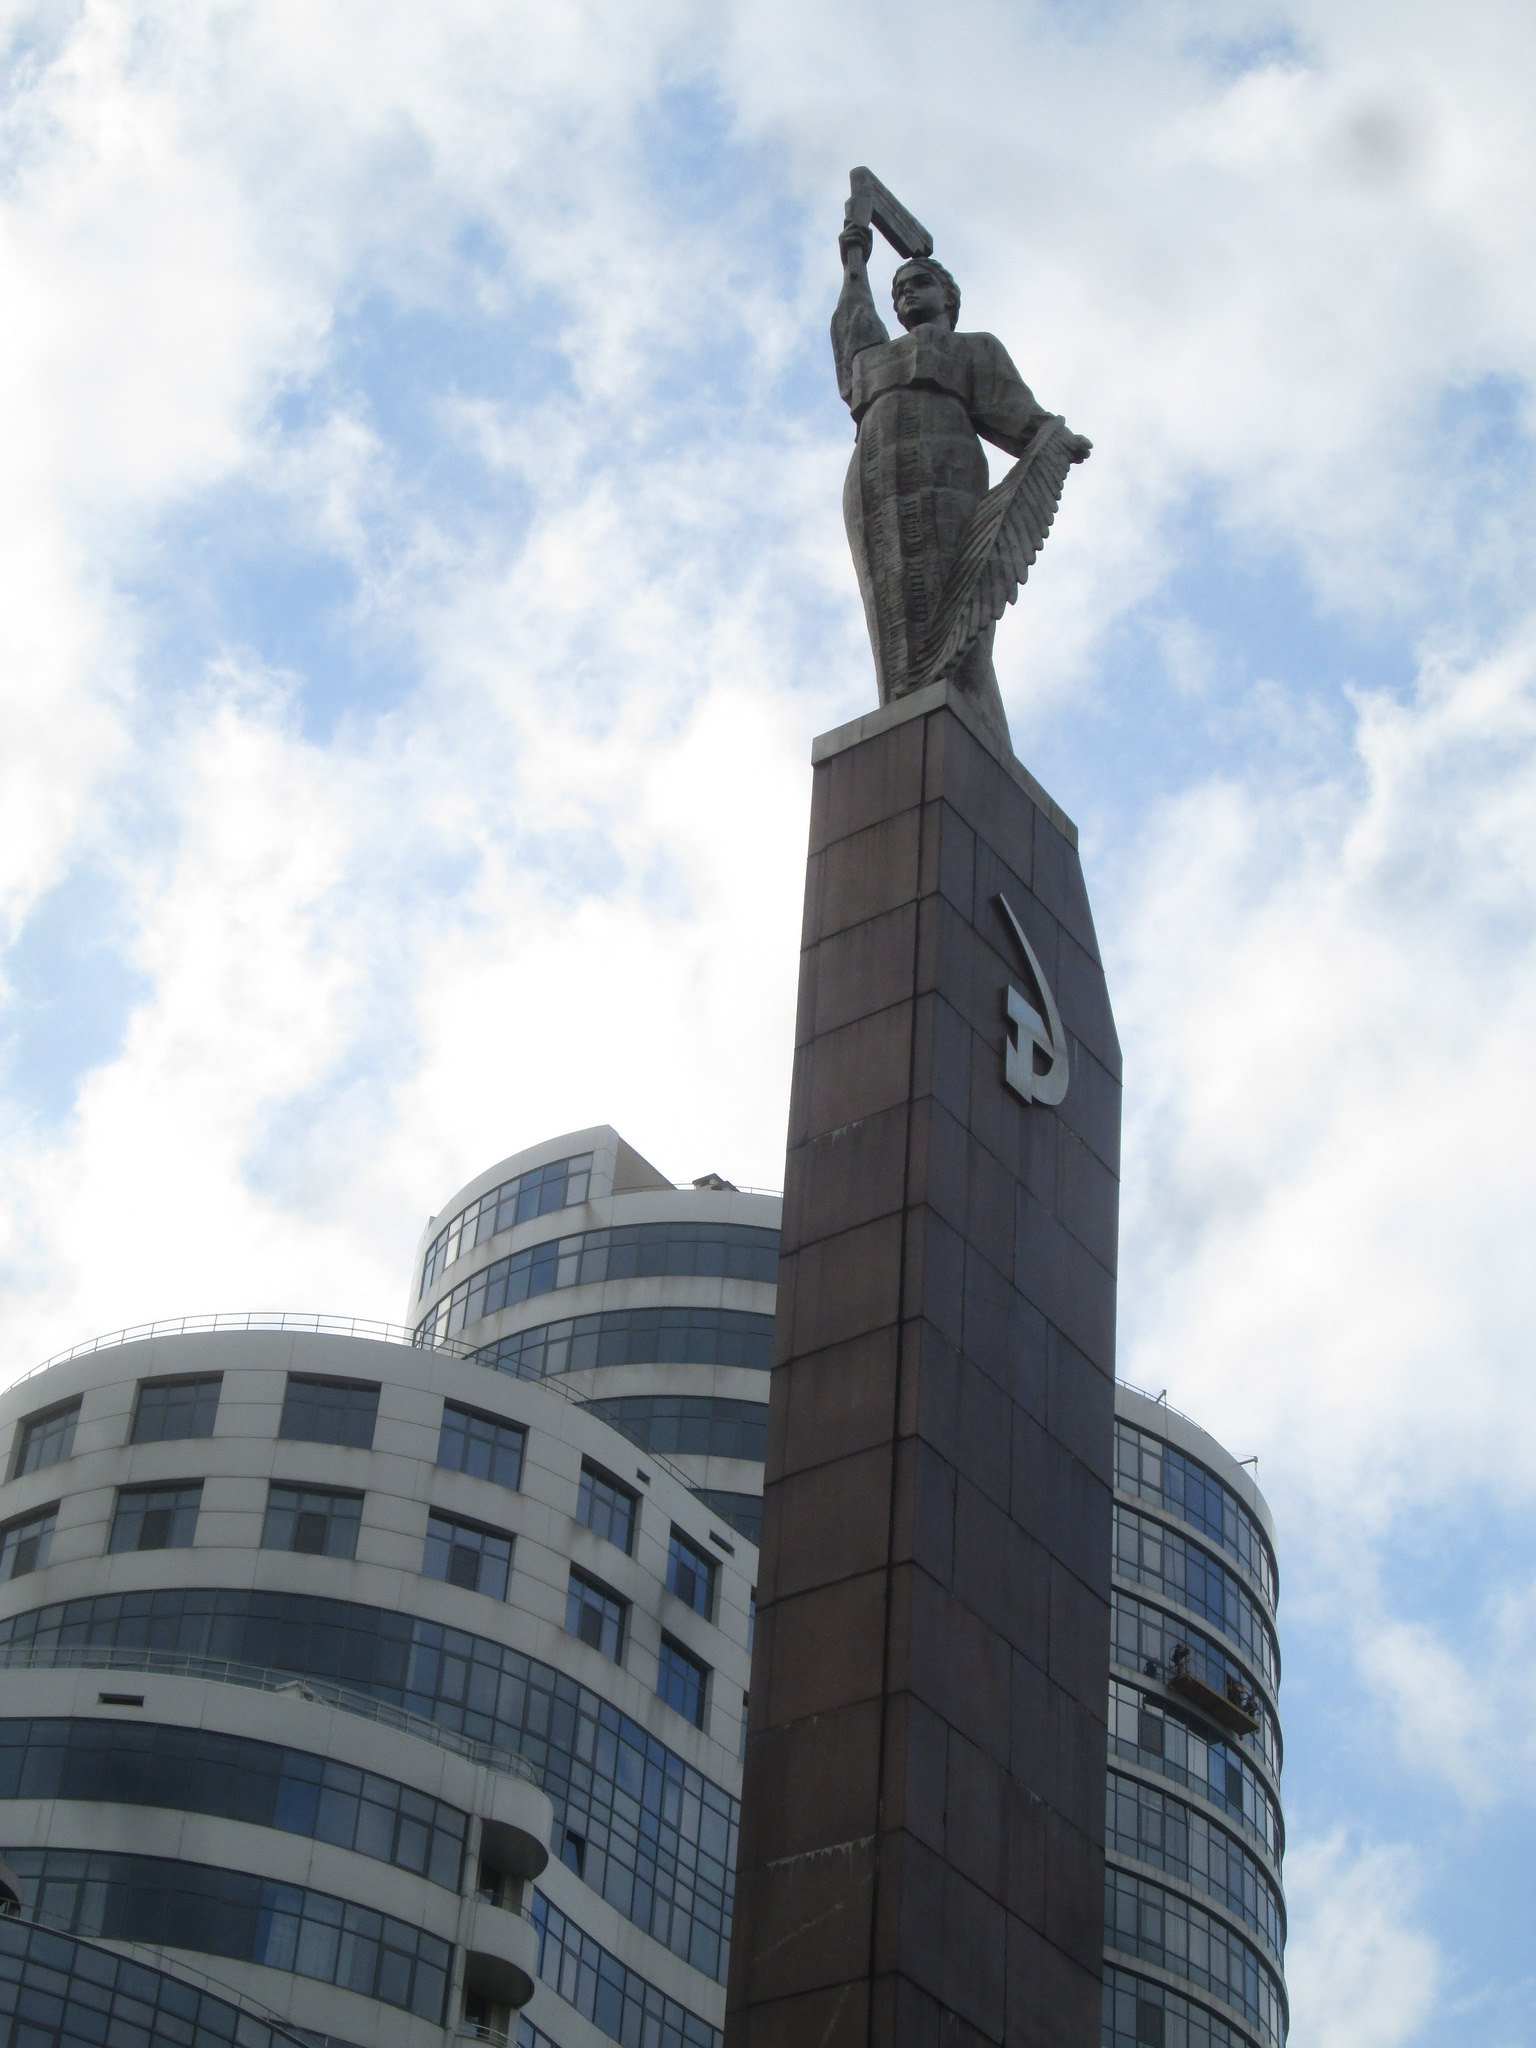 Soviet sculpture at Victory Embankment. Image: Owen Hatherley